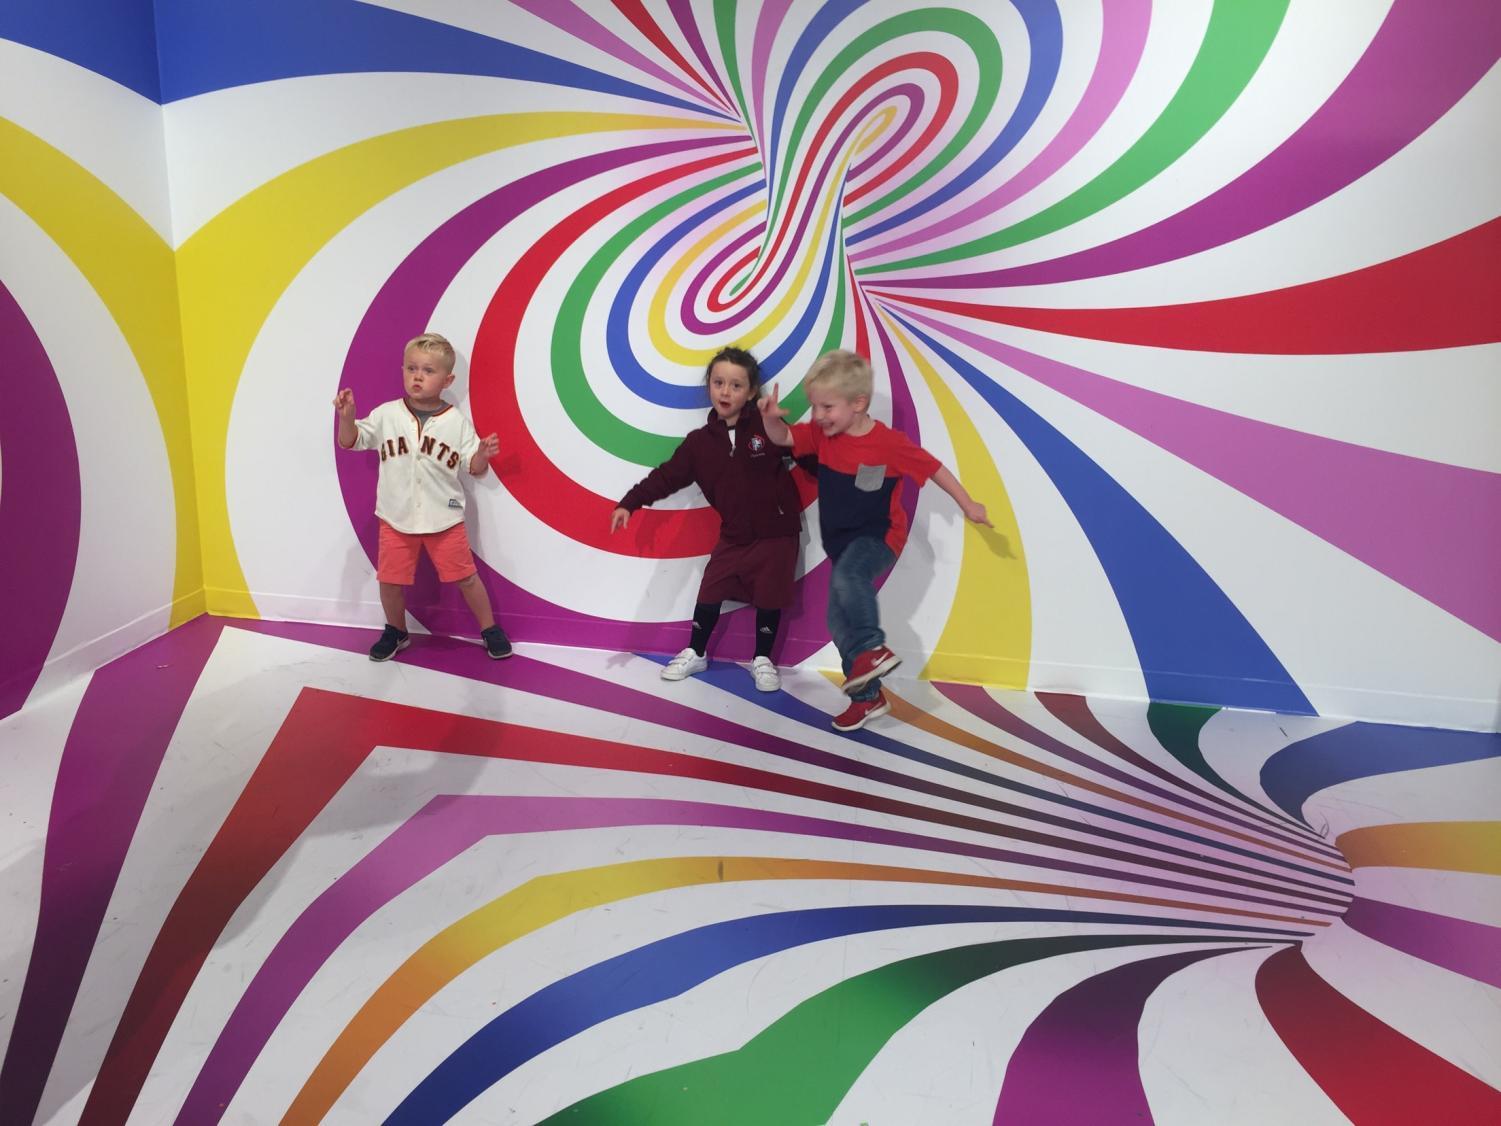 Faculty children Sebastian Galringhouse and Isla Abbott play with their friend Elliot Stewart-Kahn in one of Candytopia's installations. The museum opened on Sept. 6 and aims to be an engaging place for all ages.